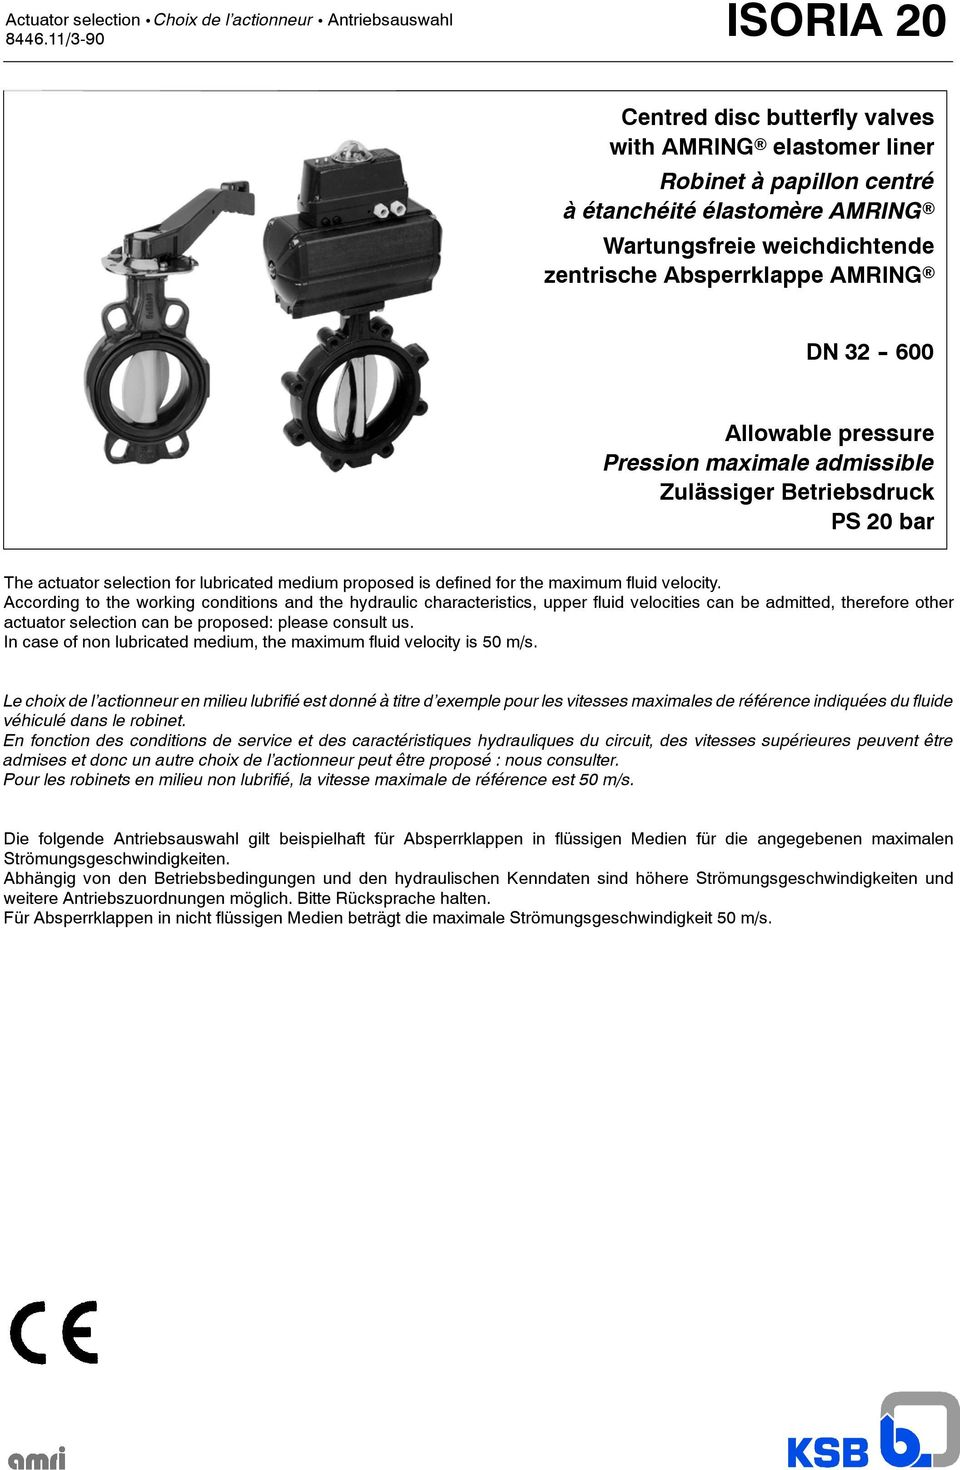 pressure Pression maximale admissible Zulässiger etriebsdruck PS 20 bar The actuator selection for lubricated medium proposed is defined for the maximum fluid velocity.